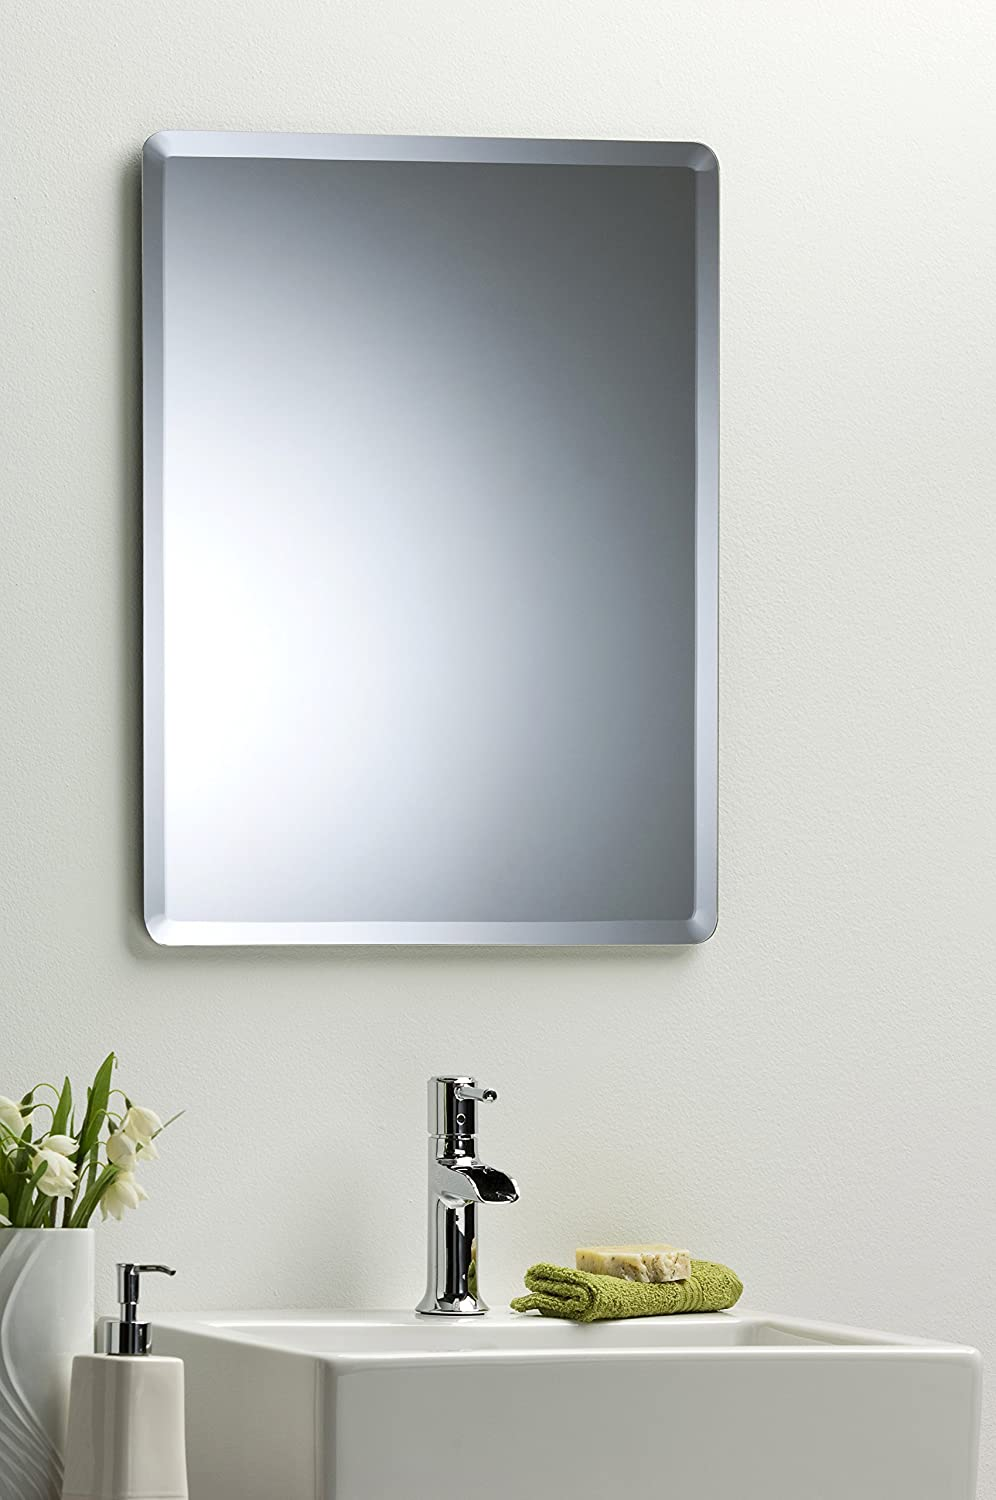 bathroom wall mirror simple elegant rectangular 60cm x 45cm plain design with bevel wall mounted amazoncouk kitchen u0026 home